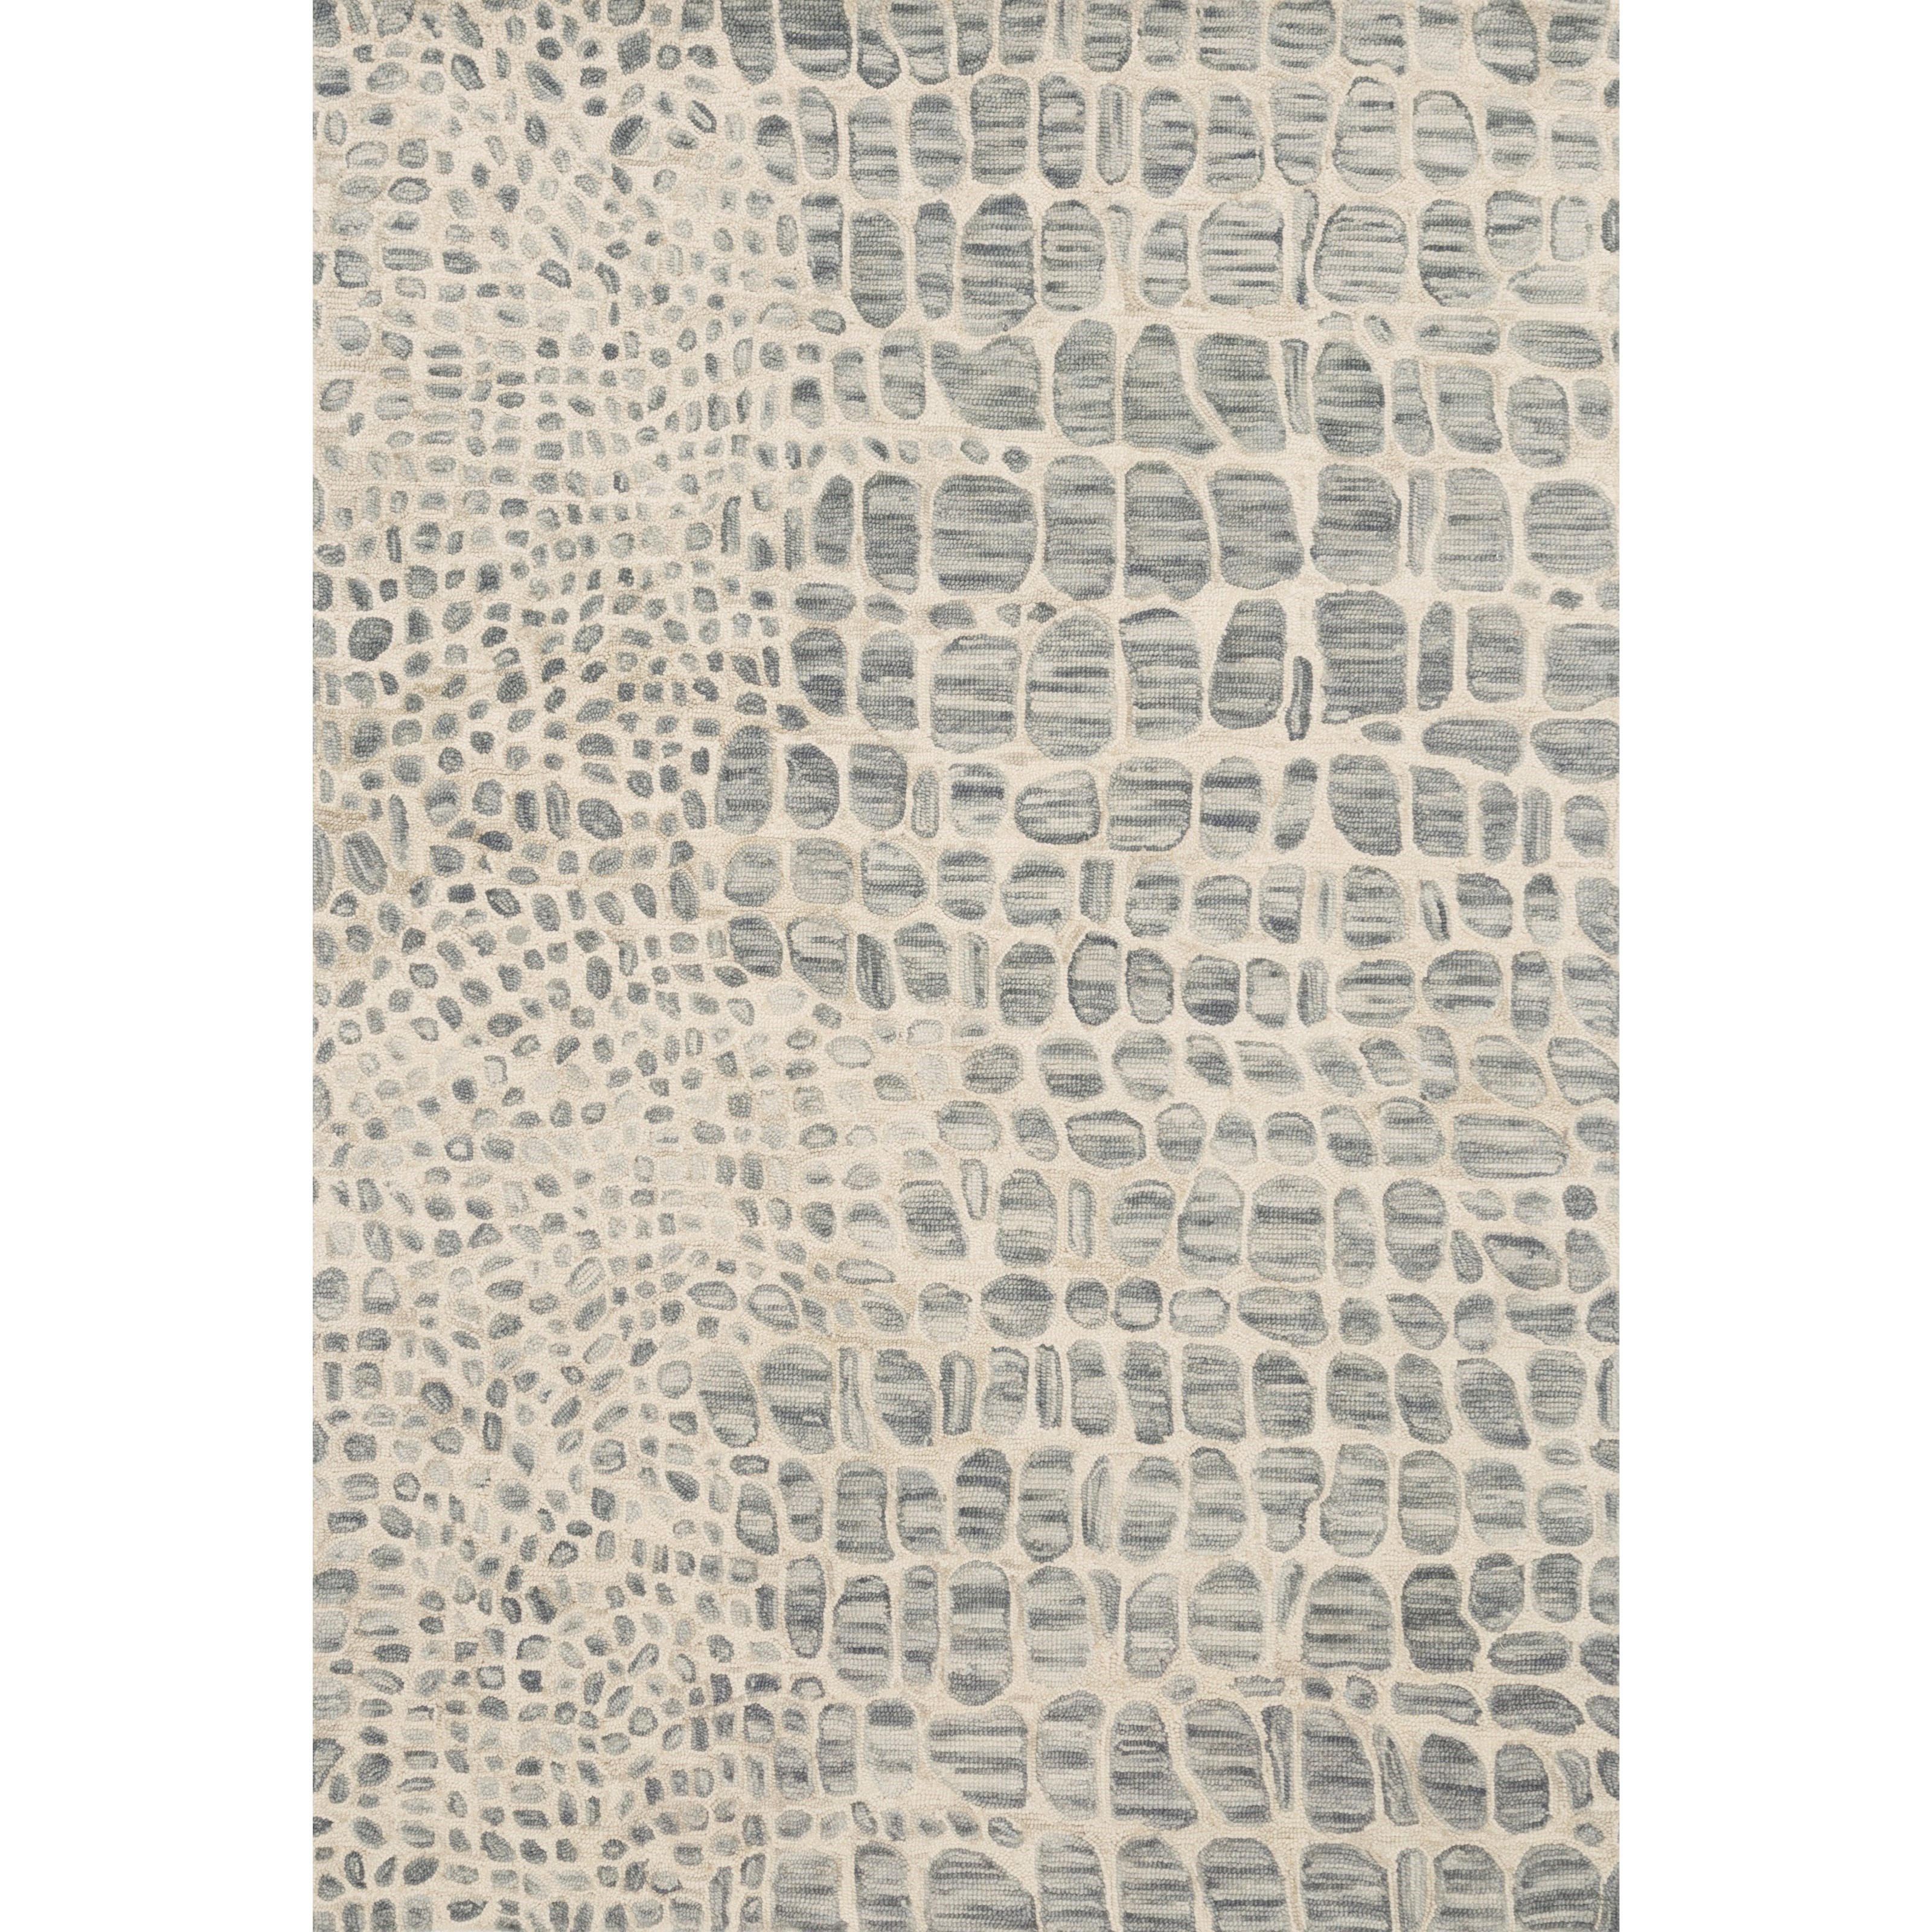 """Masai 1'6"""" x 1'6""""  Silver Grey / Ivory Rug by Loloi Rugs at Virginia Furniture Market"""